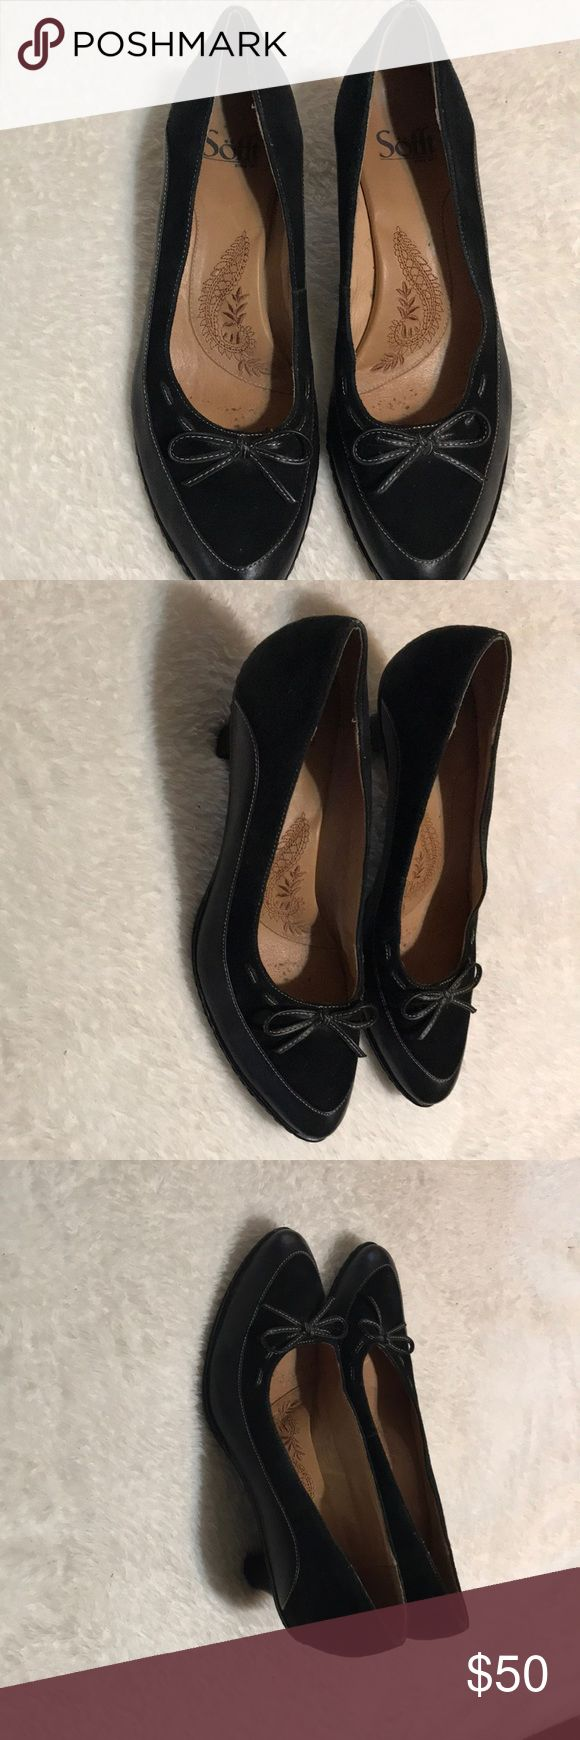 Sofft leather and suede pumps Black leather and suede pumps perfect for office with slacks, dresses, or jeans. Price firm Sofft Shoes Heels